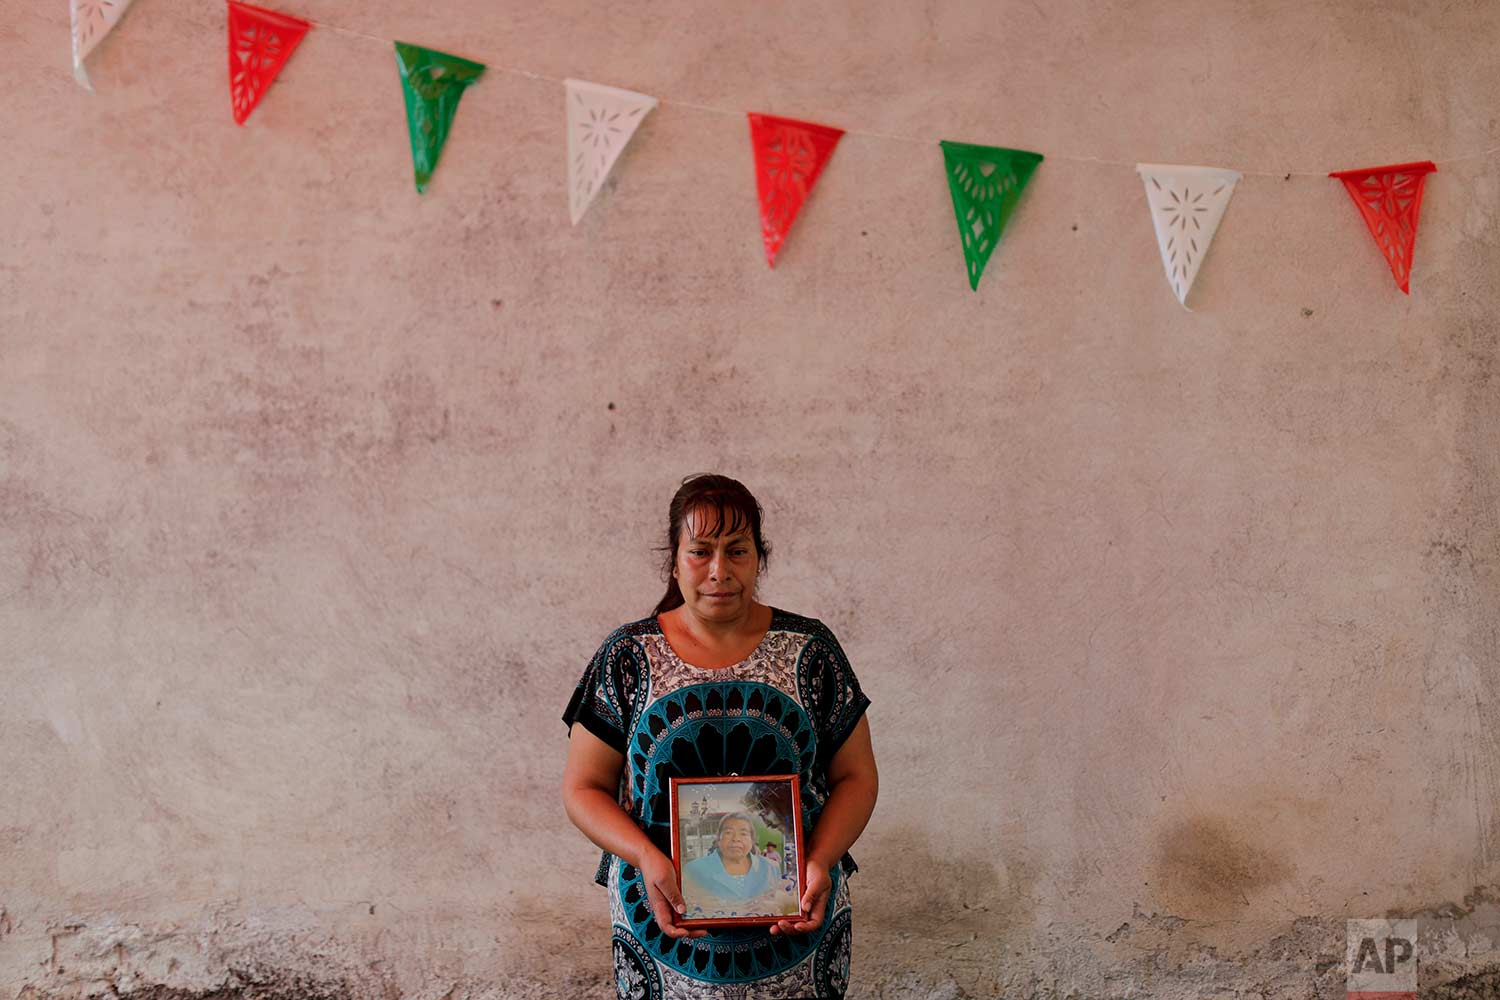 """Juana Villanueva, 41, holds the photo of her mother Carmela Meresis, who died in a church that collapsed during the Sept. 19 earthquake, Sept. 23, 2017, in Atzala, Mexico. Villanueva lost her two sisters, a brother-in-law, a nephew and a niece to the quake who were attending a baptism when the temple collapsed. Villanueva said: """"We need to have the will because God left us here to live. We're alive for a reason, to rise above all else and support each other. This is really hard what we're dealing with, but if we don't give it all we've got and find strength and courage from where we can, who will? If we don't help each other spiritually and emotionally, we'll fall. No, we have to have the will because life goes on."""" (AP Photo/Natacha Pisarenko)"""